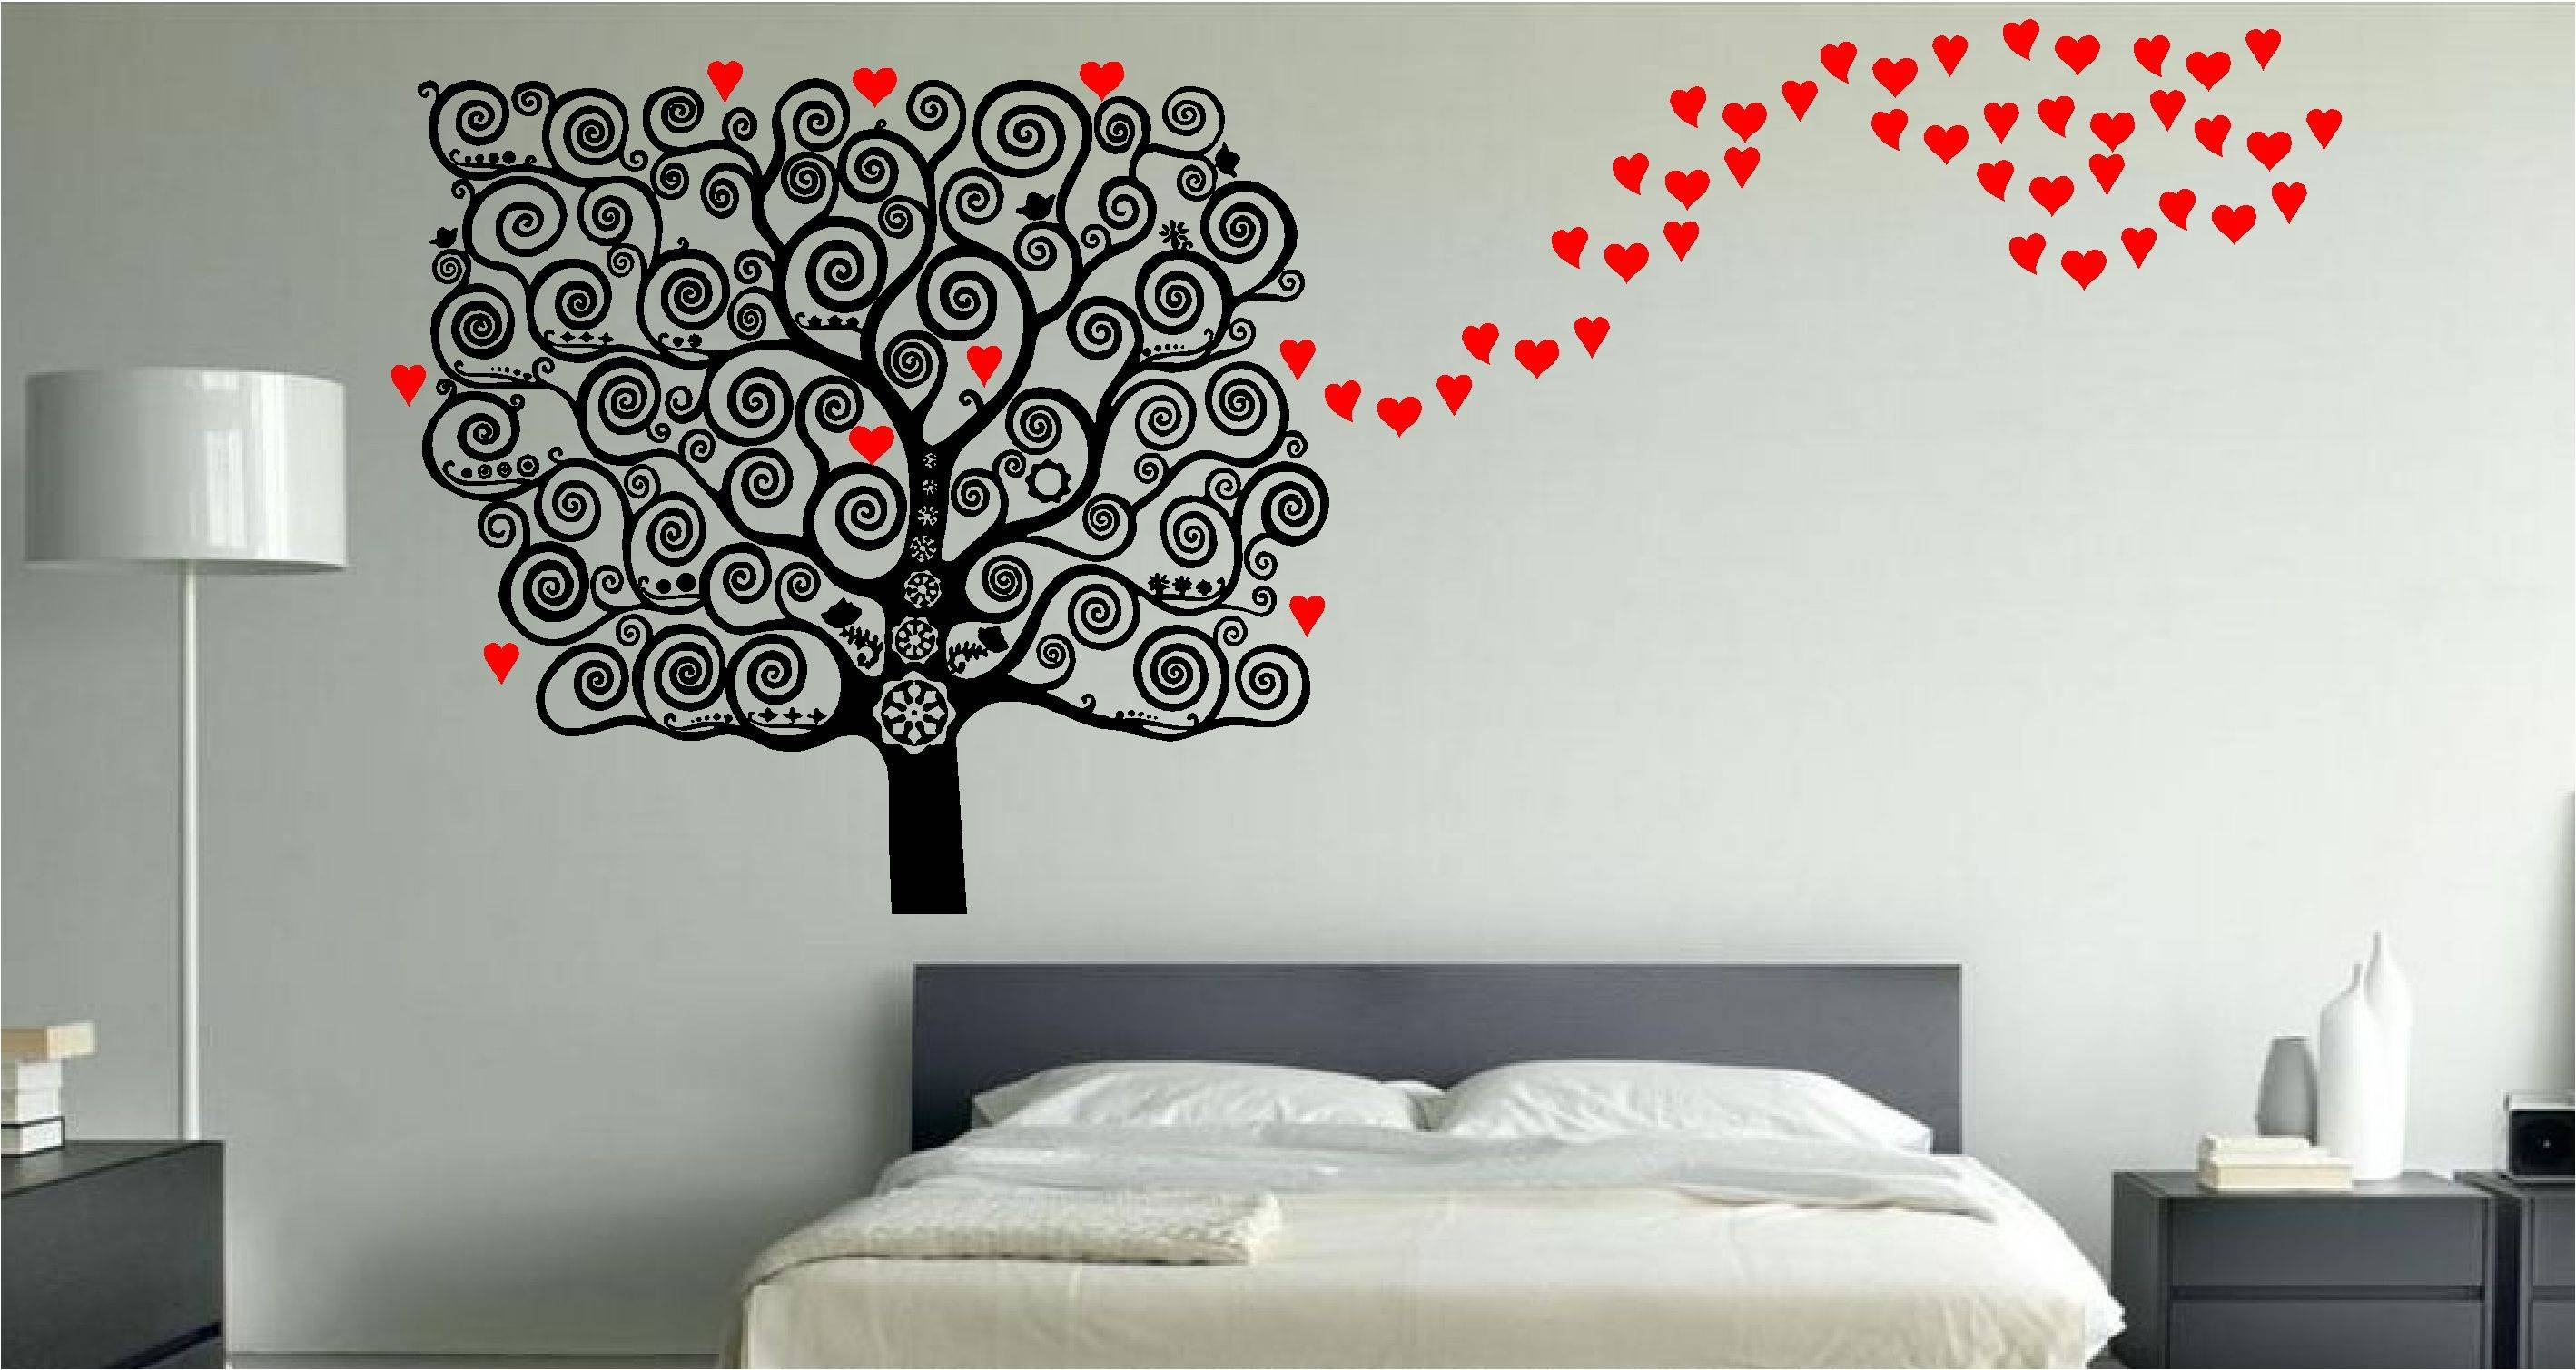 Bedroom : Abstract Wall Art Metal Wall Art Decor Wall Art Decals With Regard To Most Up To Date Wall Art Deco Decals (View 2 of 20)